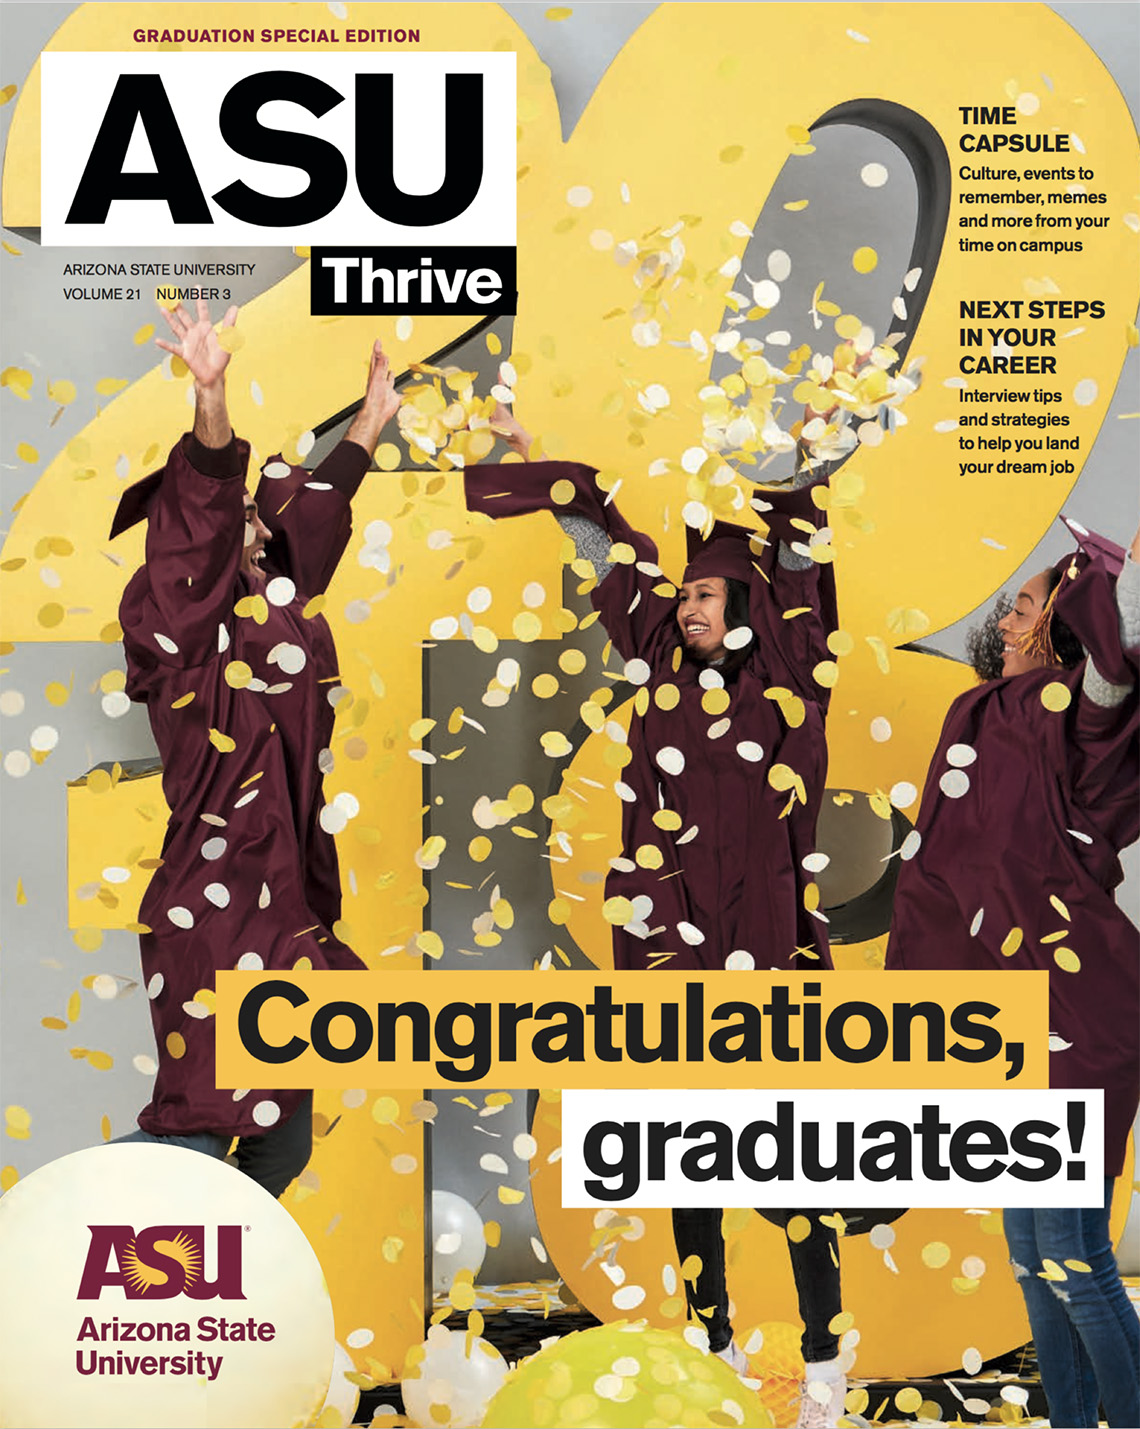 ASU Thrive 2018